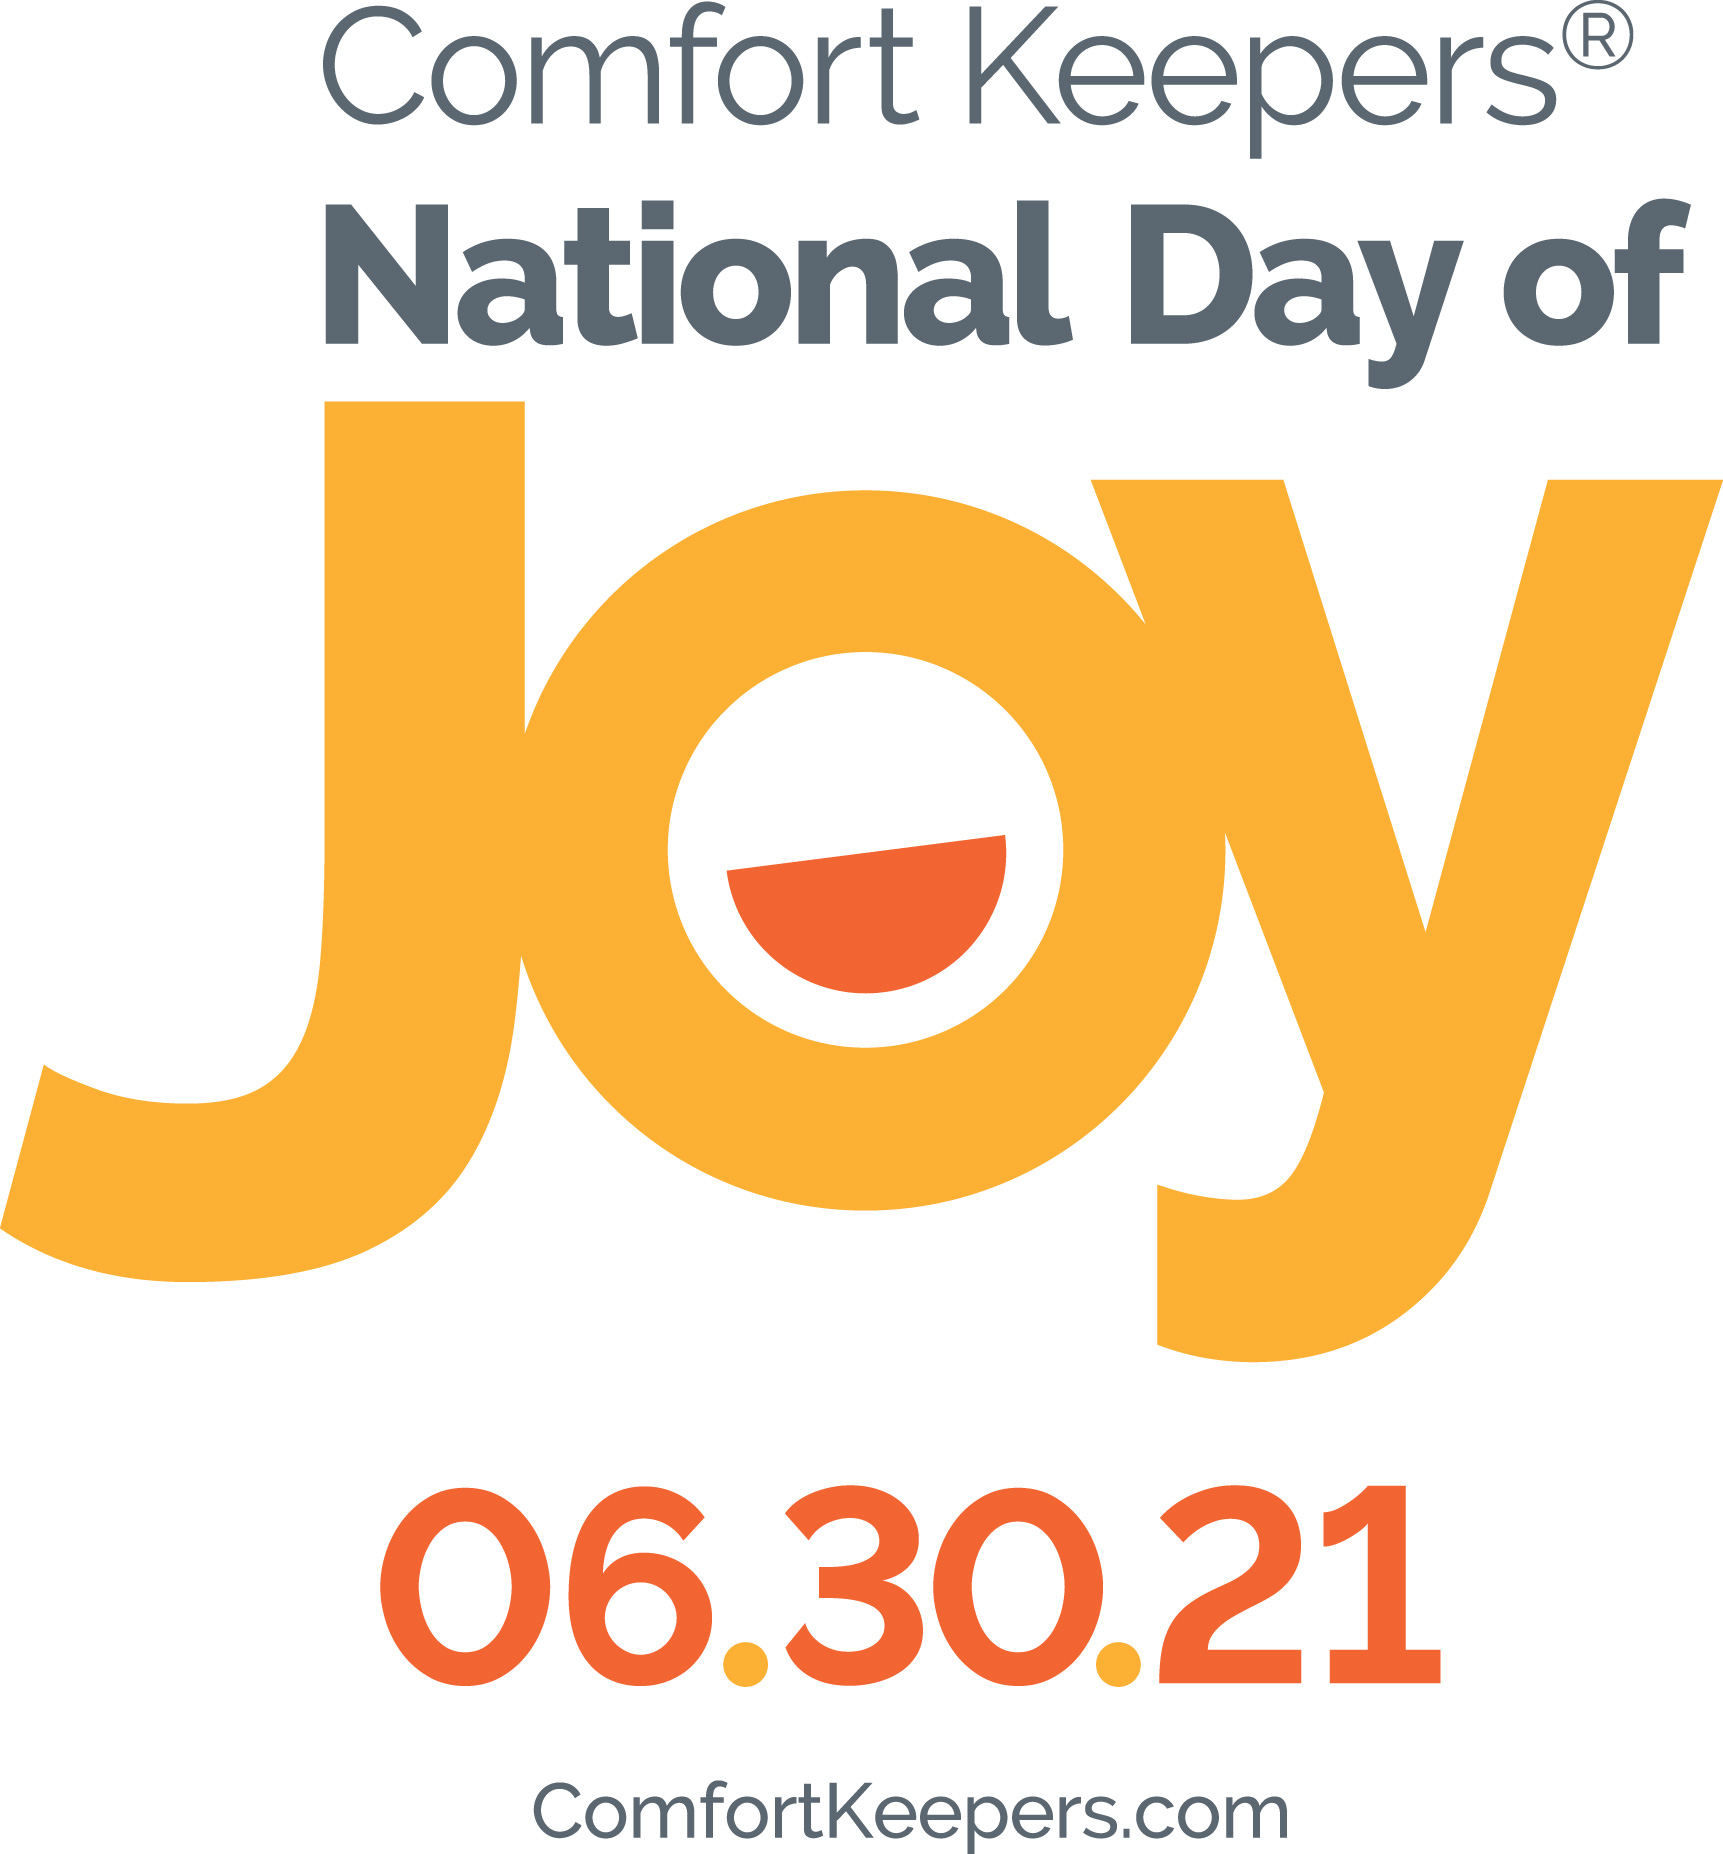 Comfort Keepers Home Care Day of Joy 2021